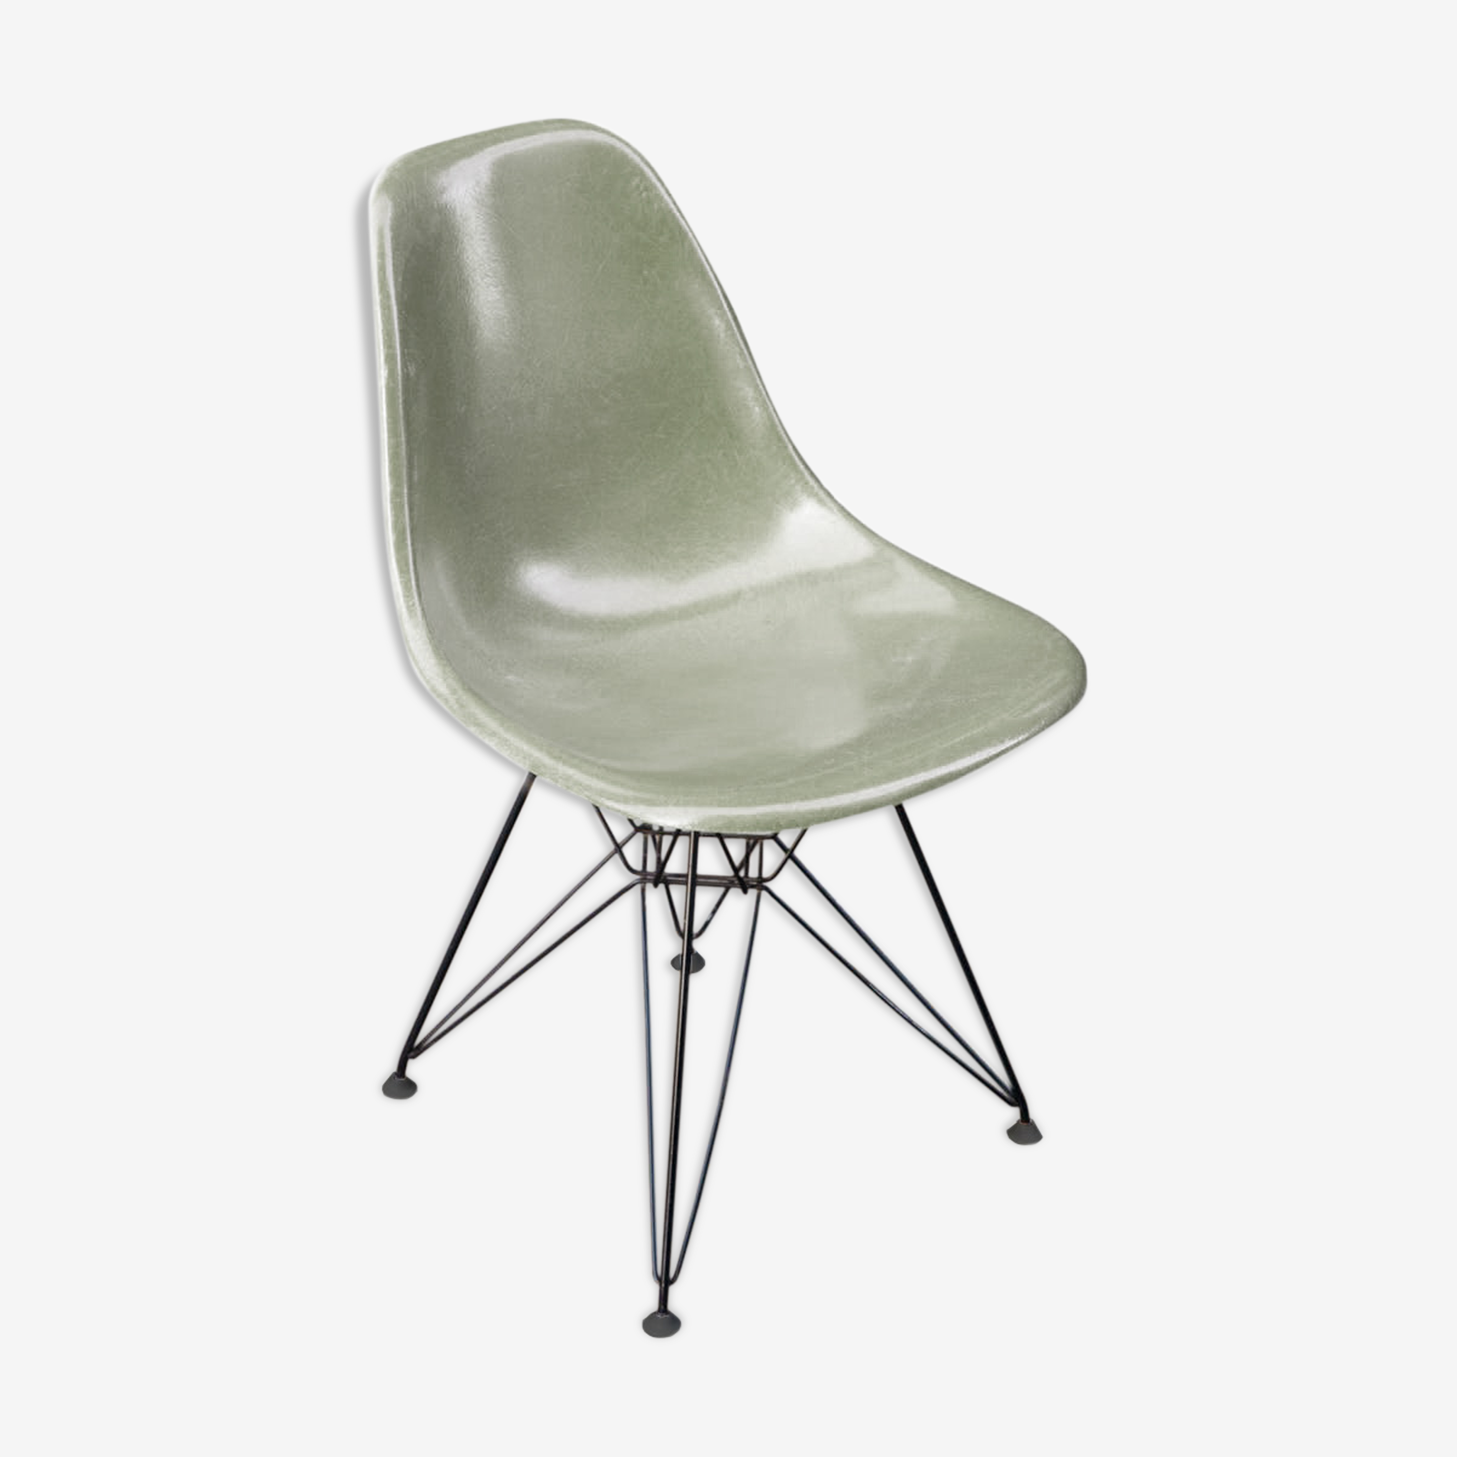 Chaise DSR design Charles et Ray Eames édition Herman Miller pied Eiffel